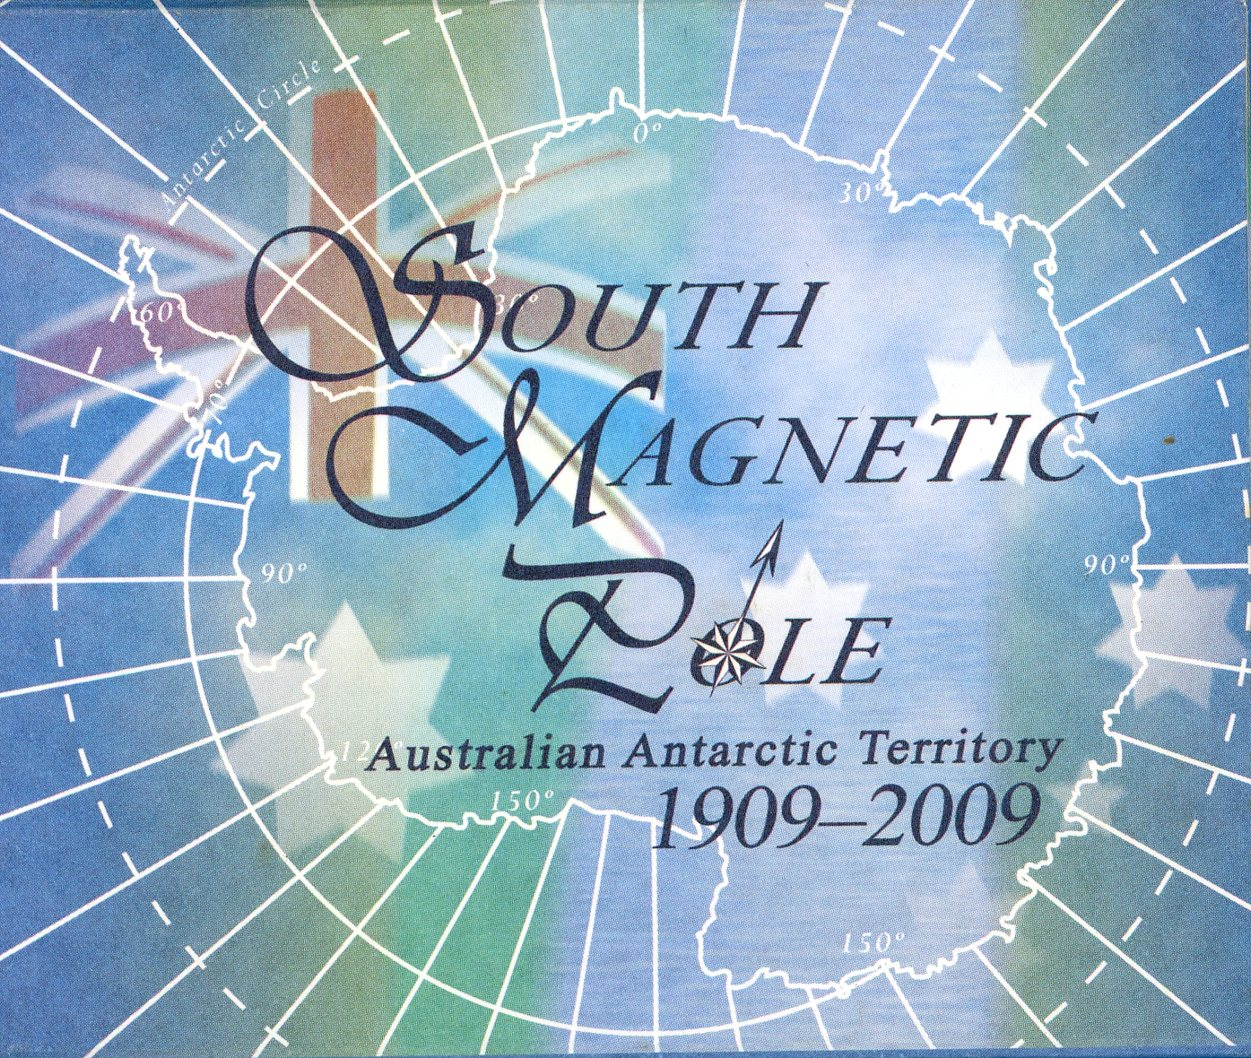 Thumbnail for 2009 1oz Coloured Silver Proof - Australian Antarctic Territory South Magnetic Pole